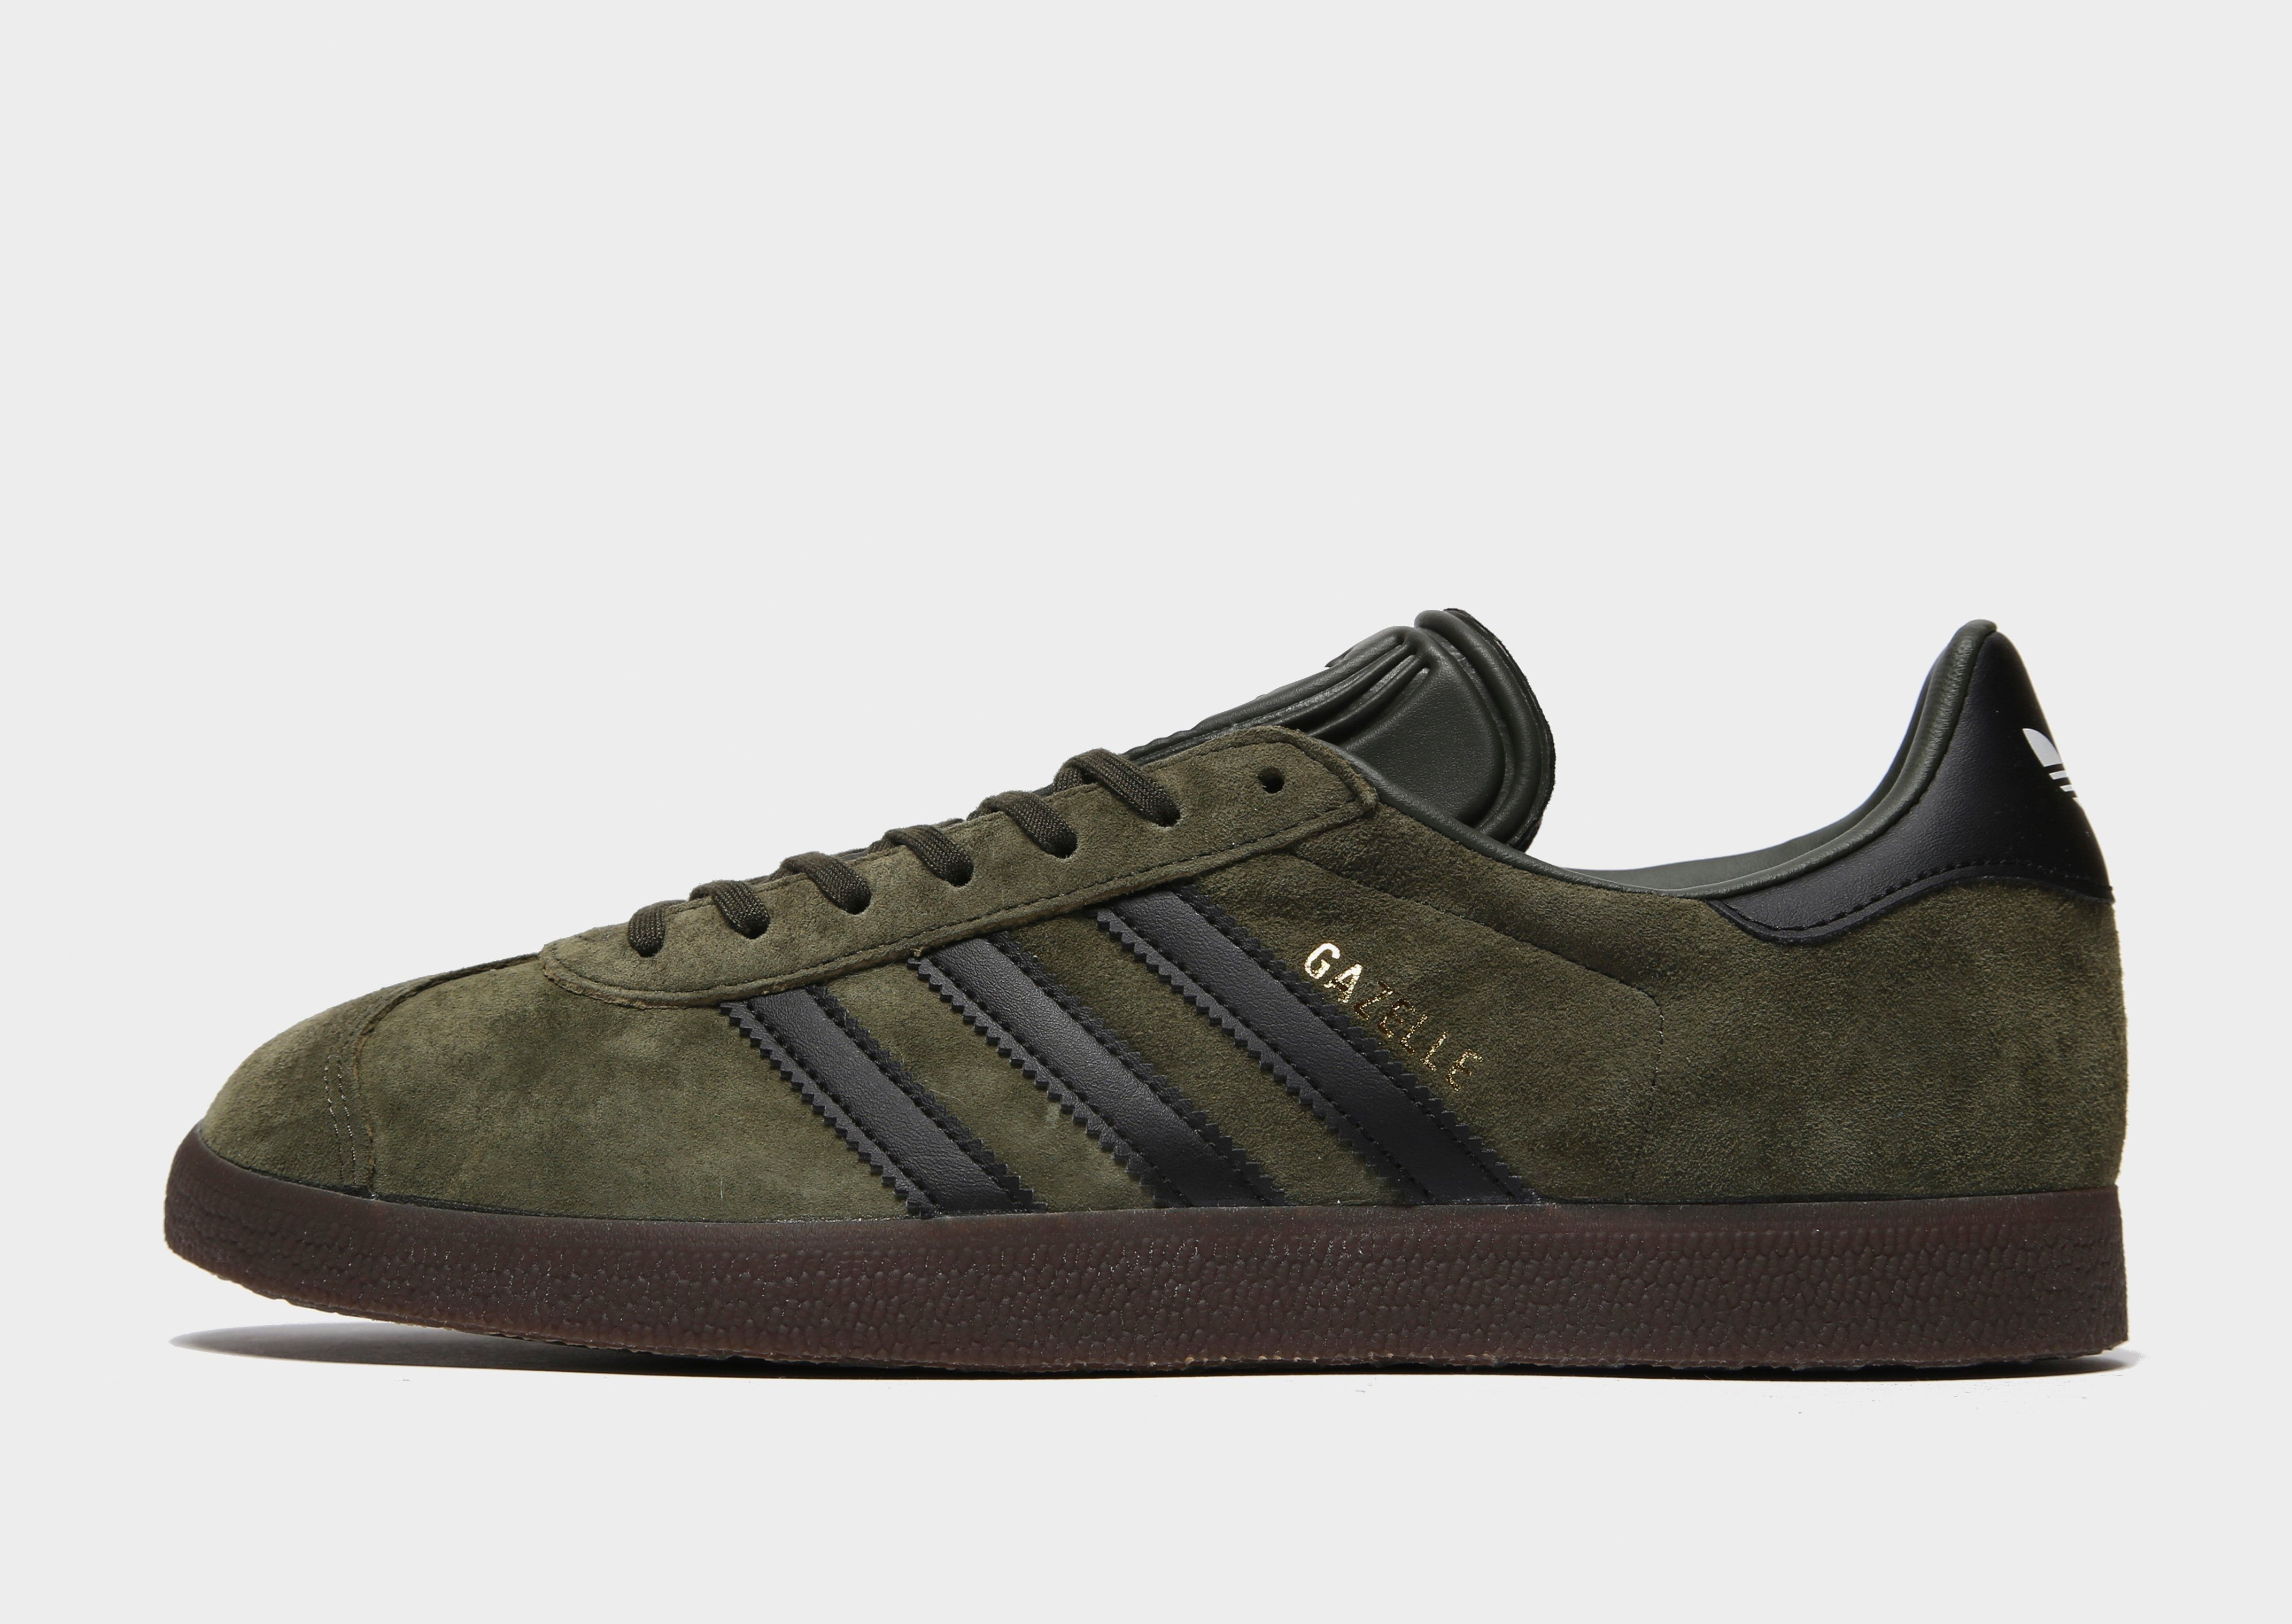 Insignia giratorio Notorio  Shop adidas Originals Gazelle from our adidas Originals range online now at JD  Sports ✓Next Day Delivery & Express Delivery A… in 2020 | Adidas originals,  Adidas, Jd sports